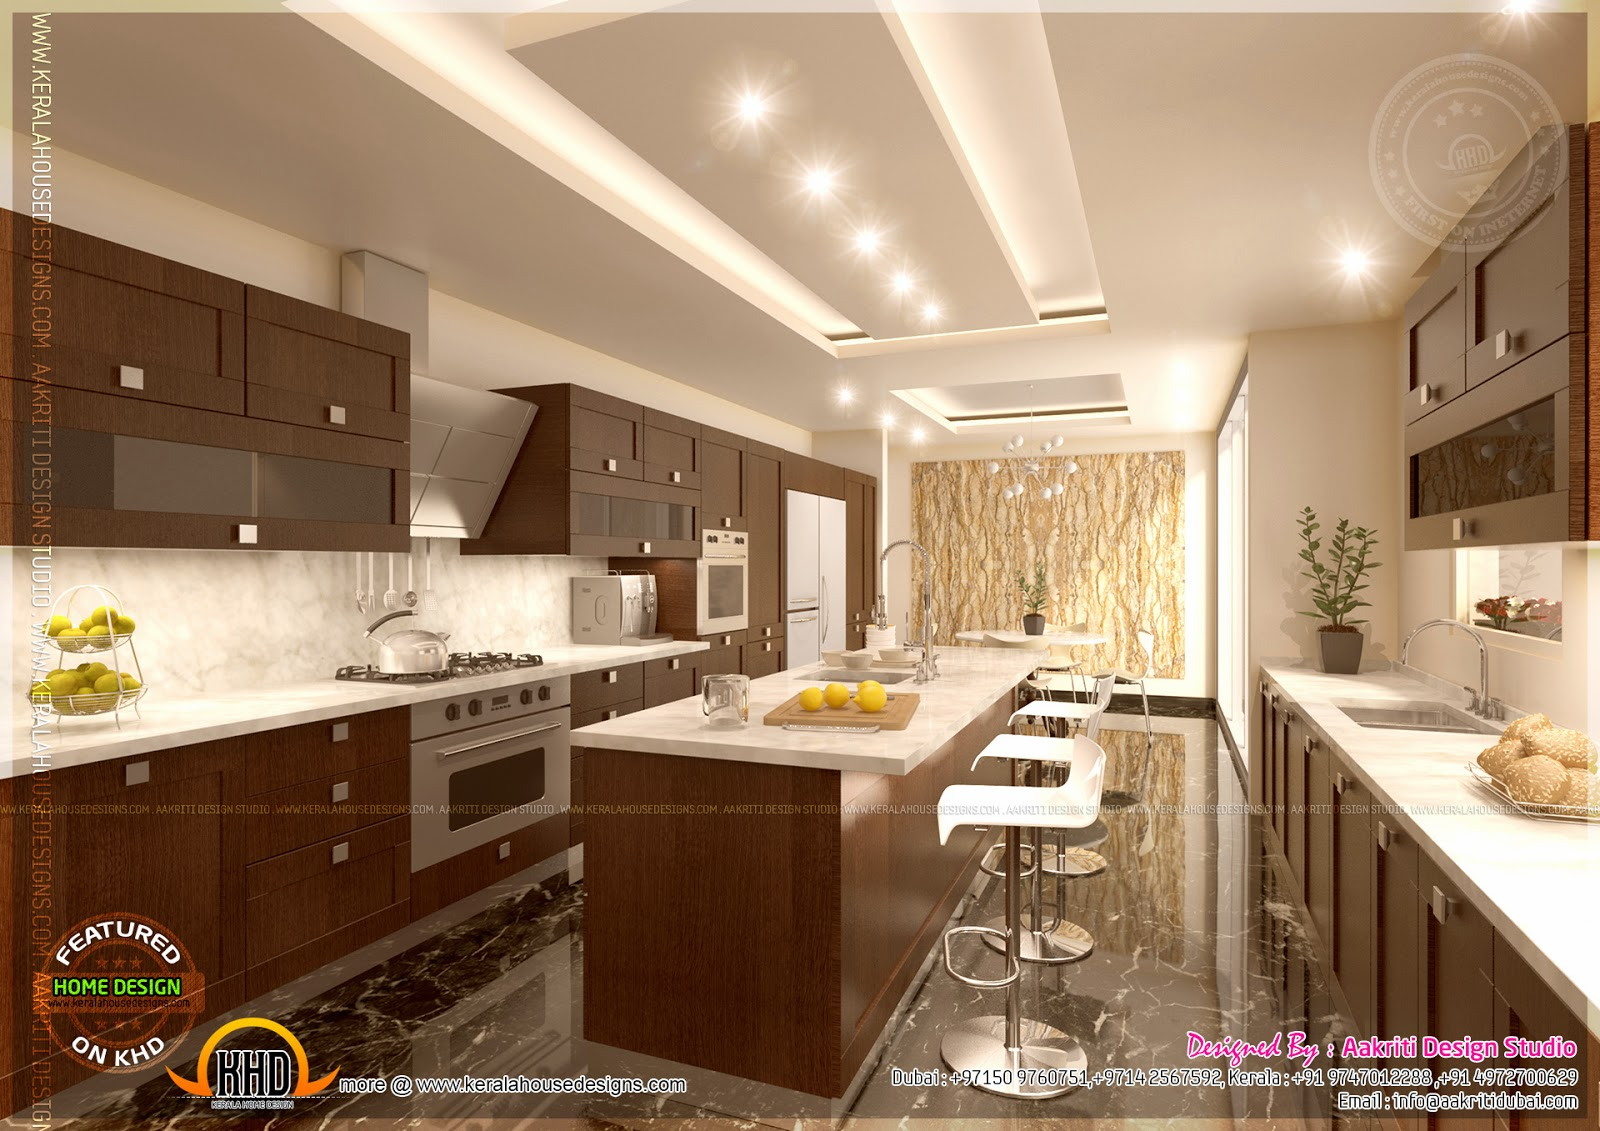 Kitchen designs by aakriti design studio kerala home for Homey kitchen designs